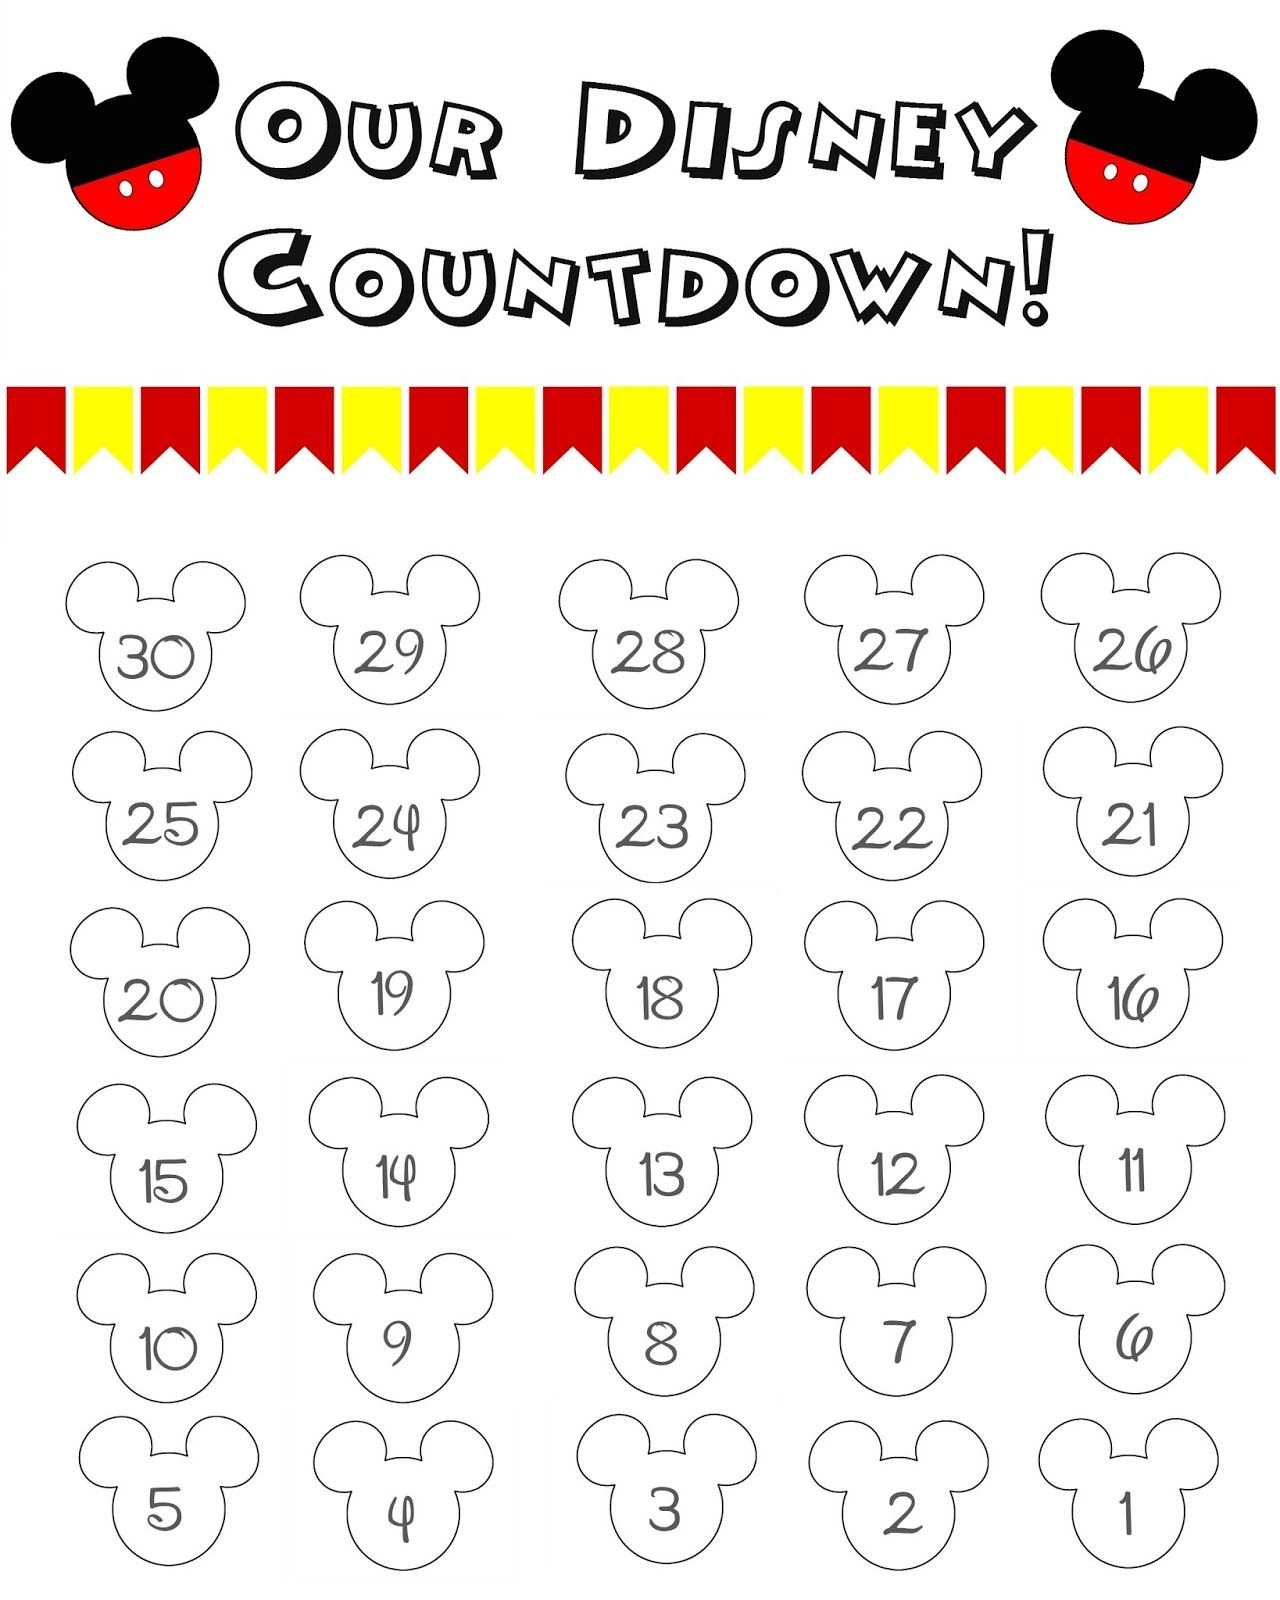 Disney World Countdown Calendar Free Printable!! The